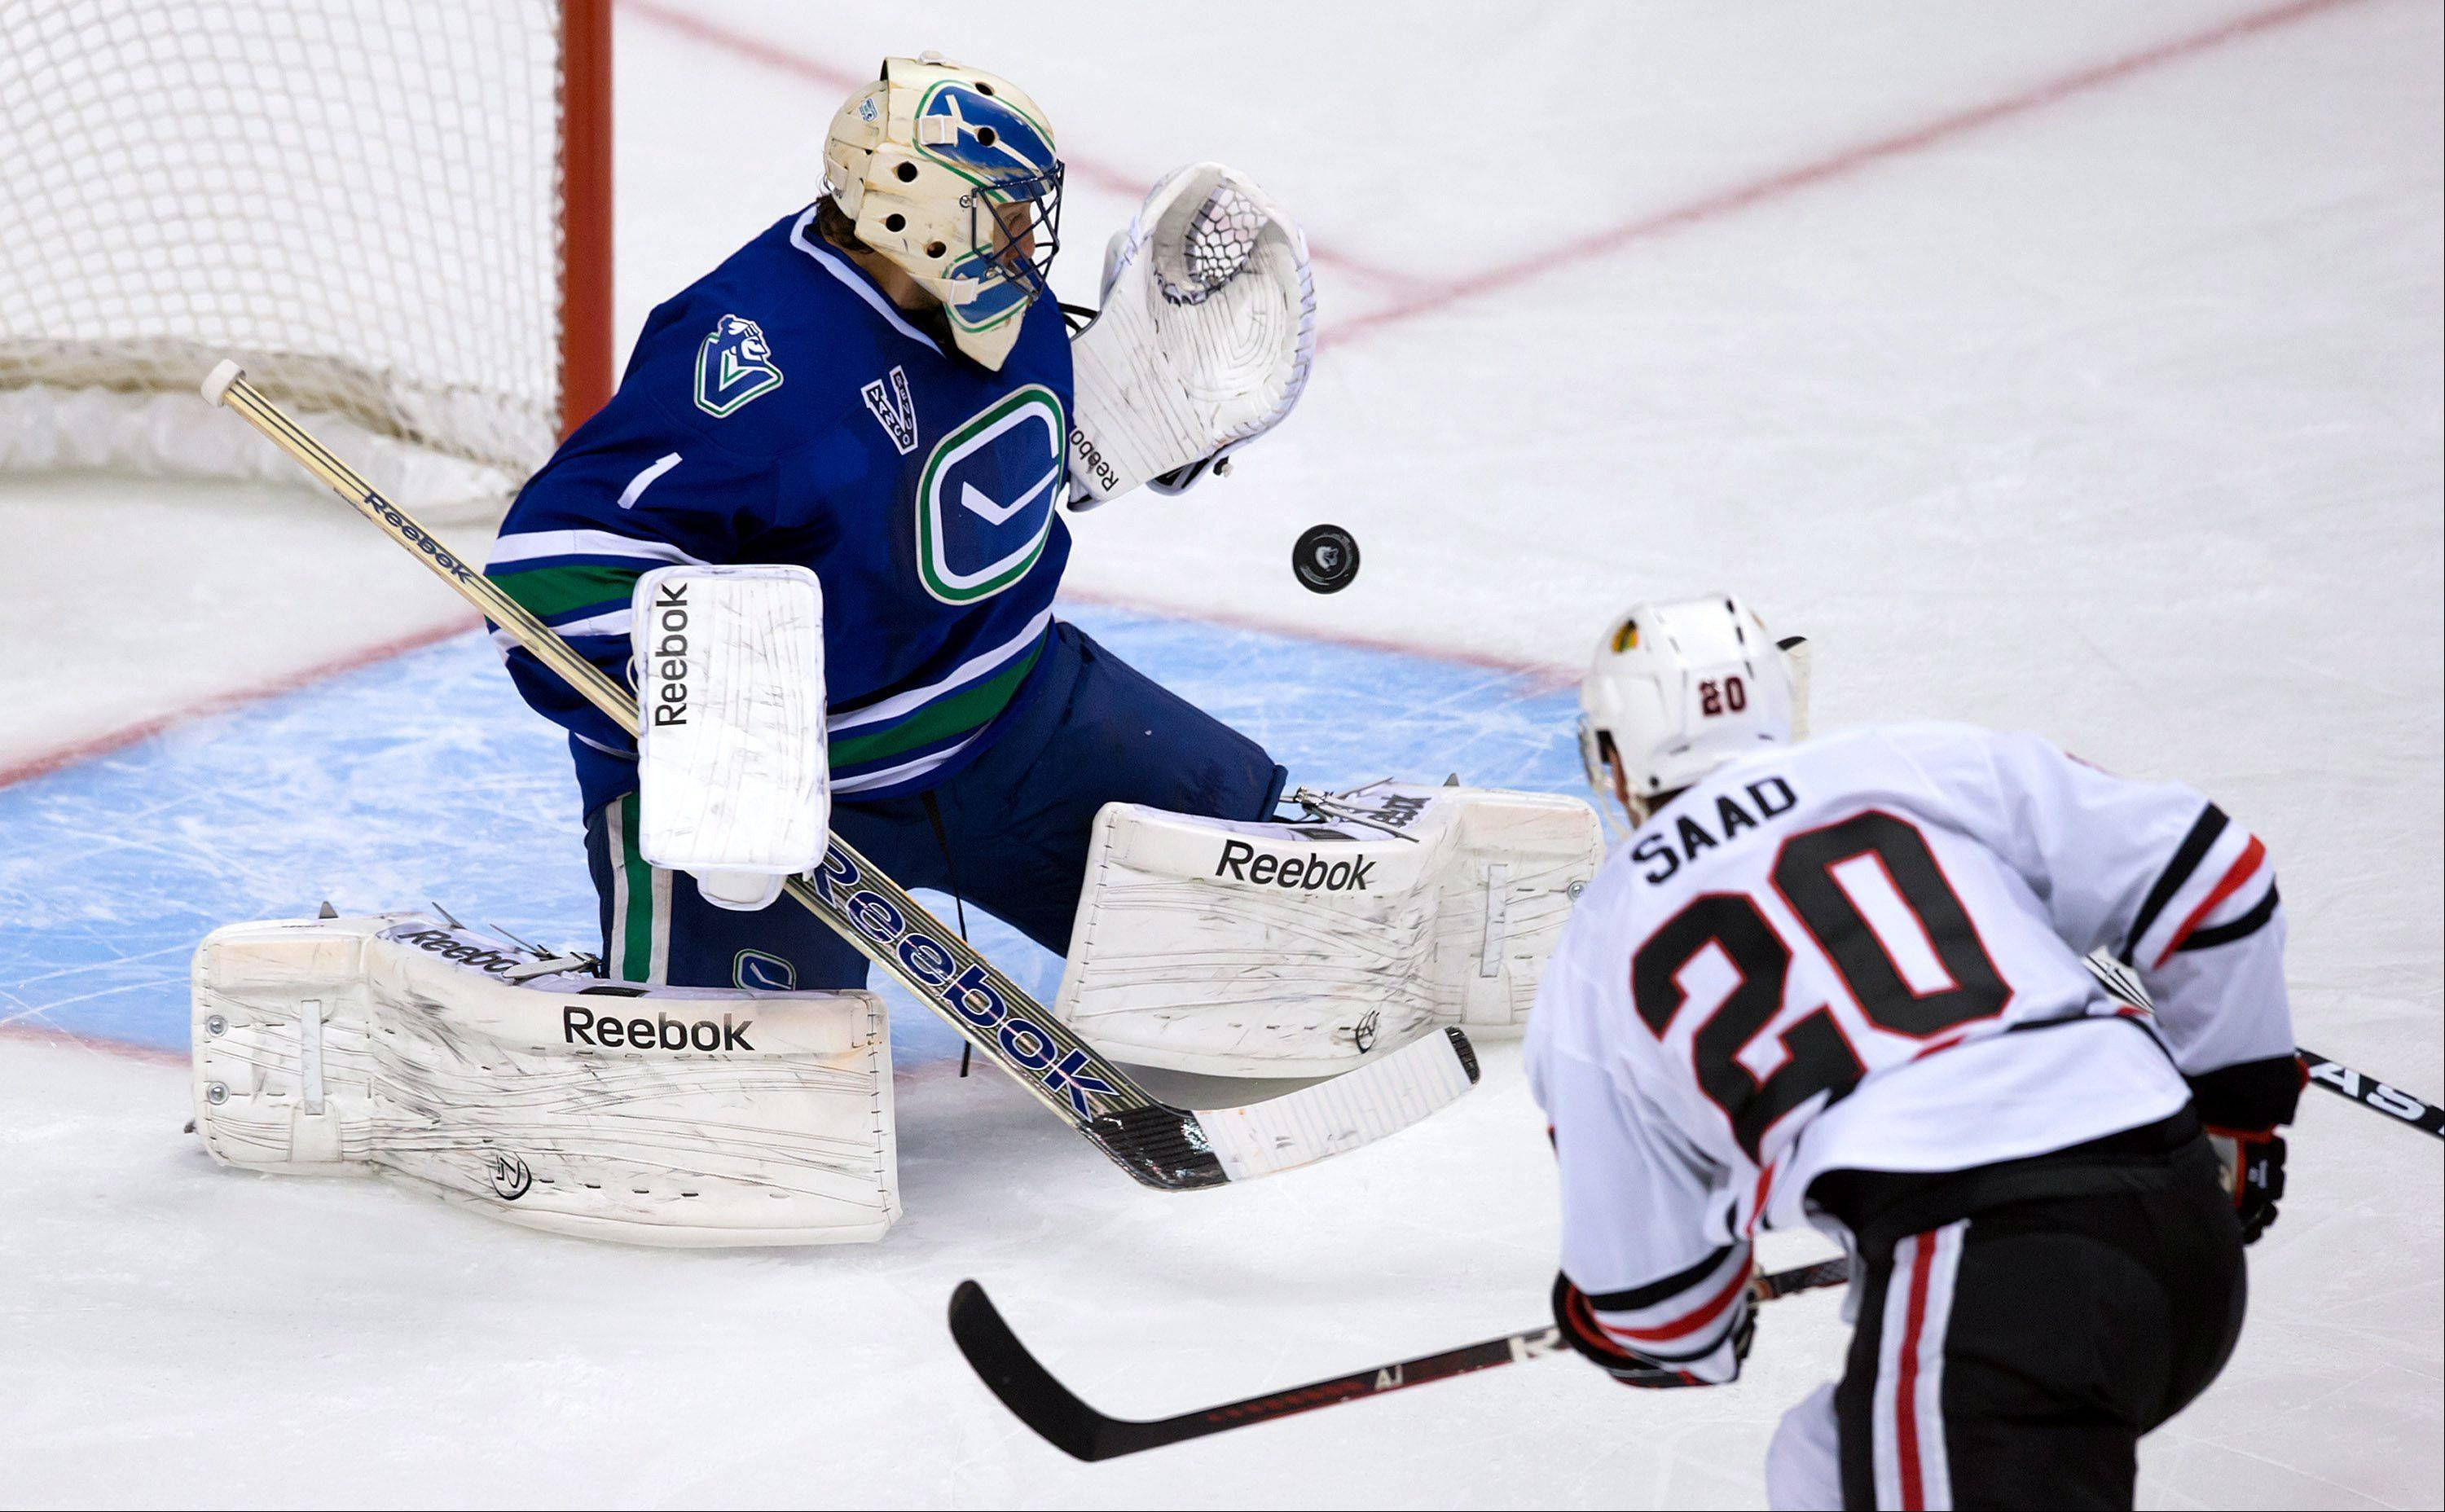 Vancouver Canucks' goalie Roberto Luongo, left, stops Chicago Blackhawks' Brandon Saad during the second period of an NHL hockey game in Vancouver, British Columbia, on Friday, Feb. 1, 2013.